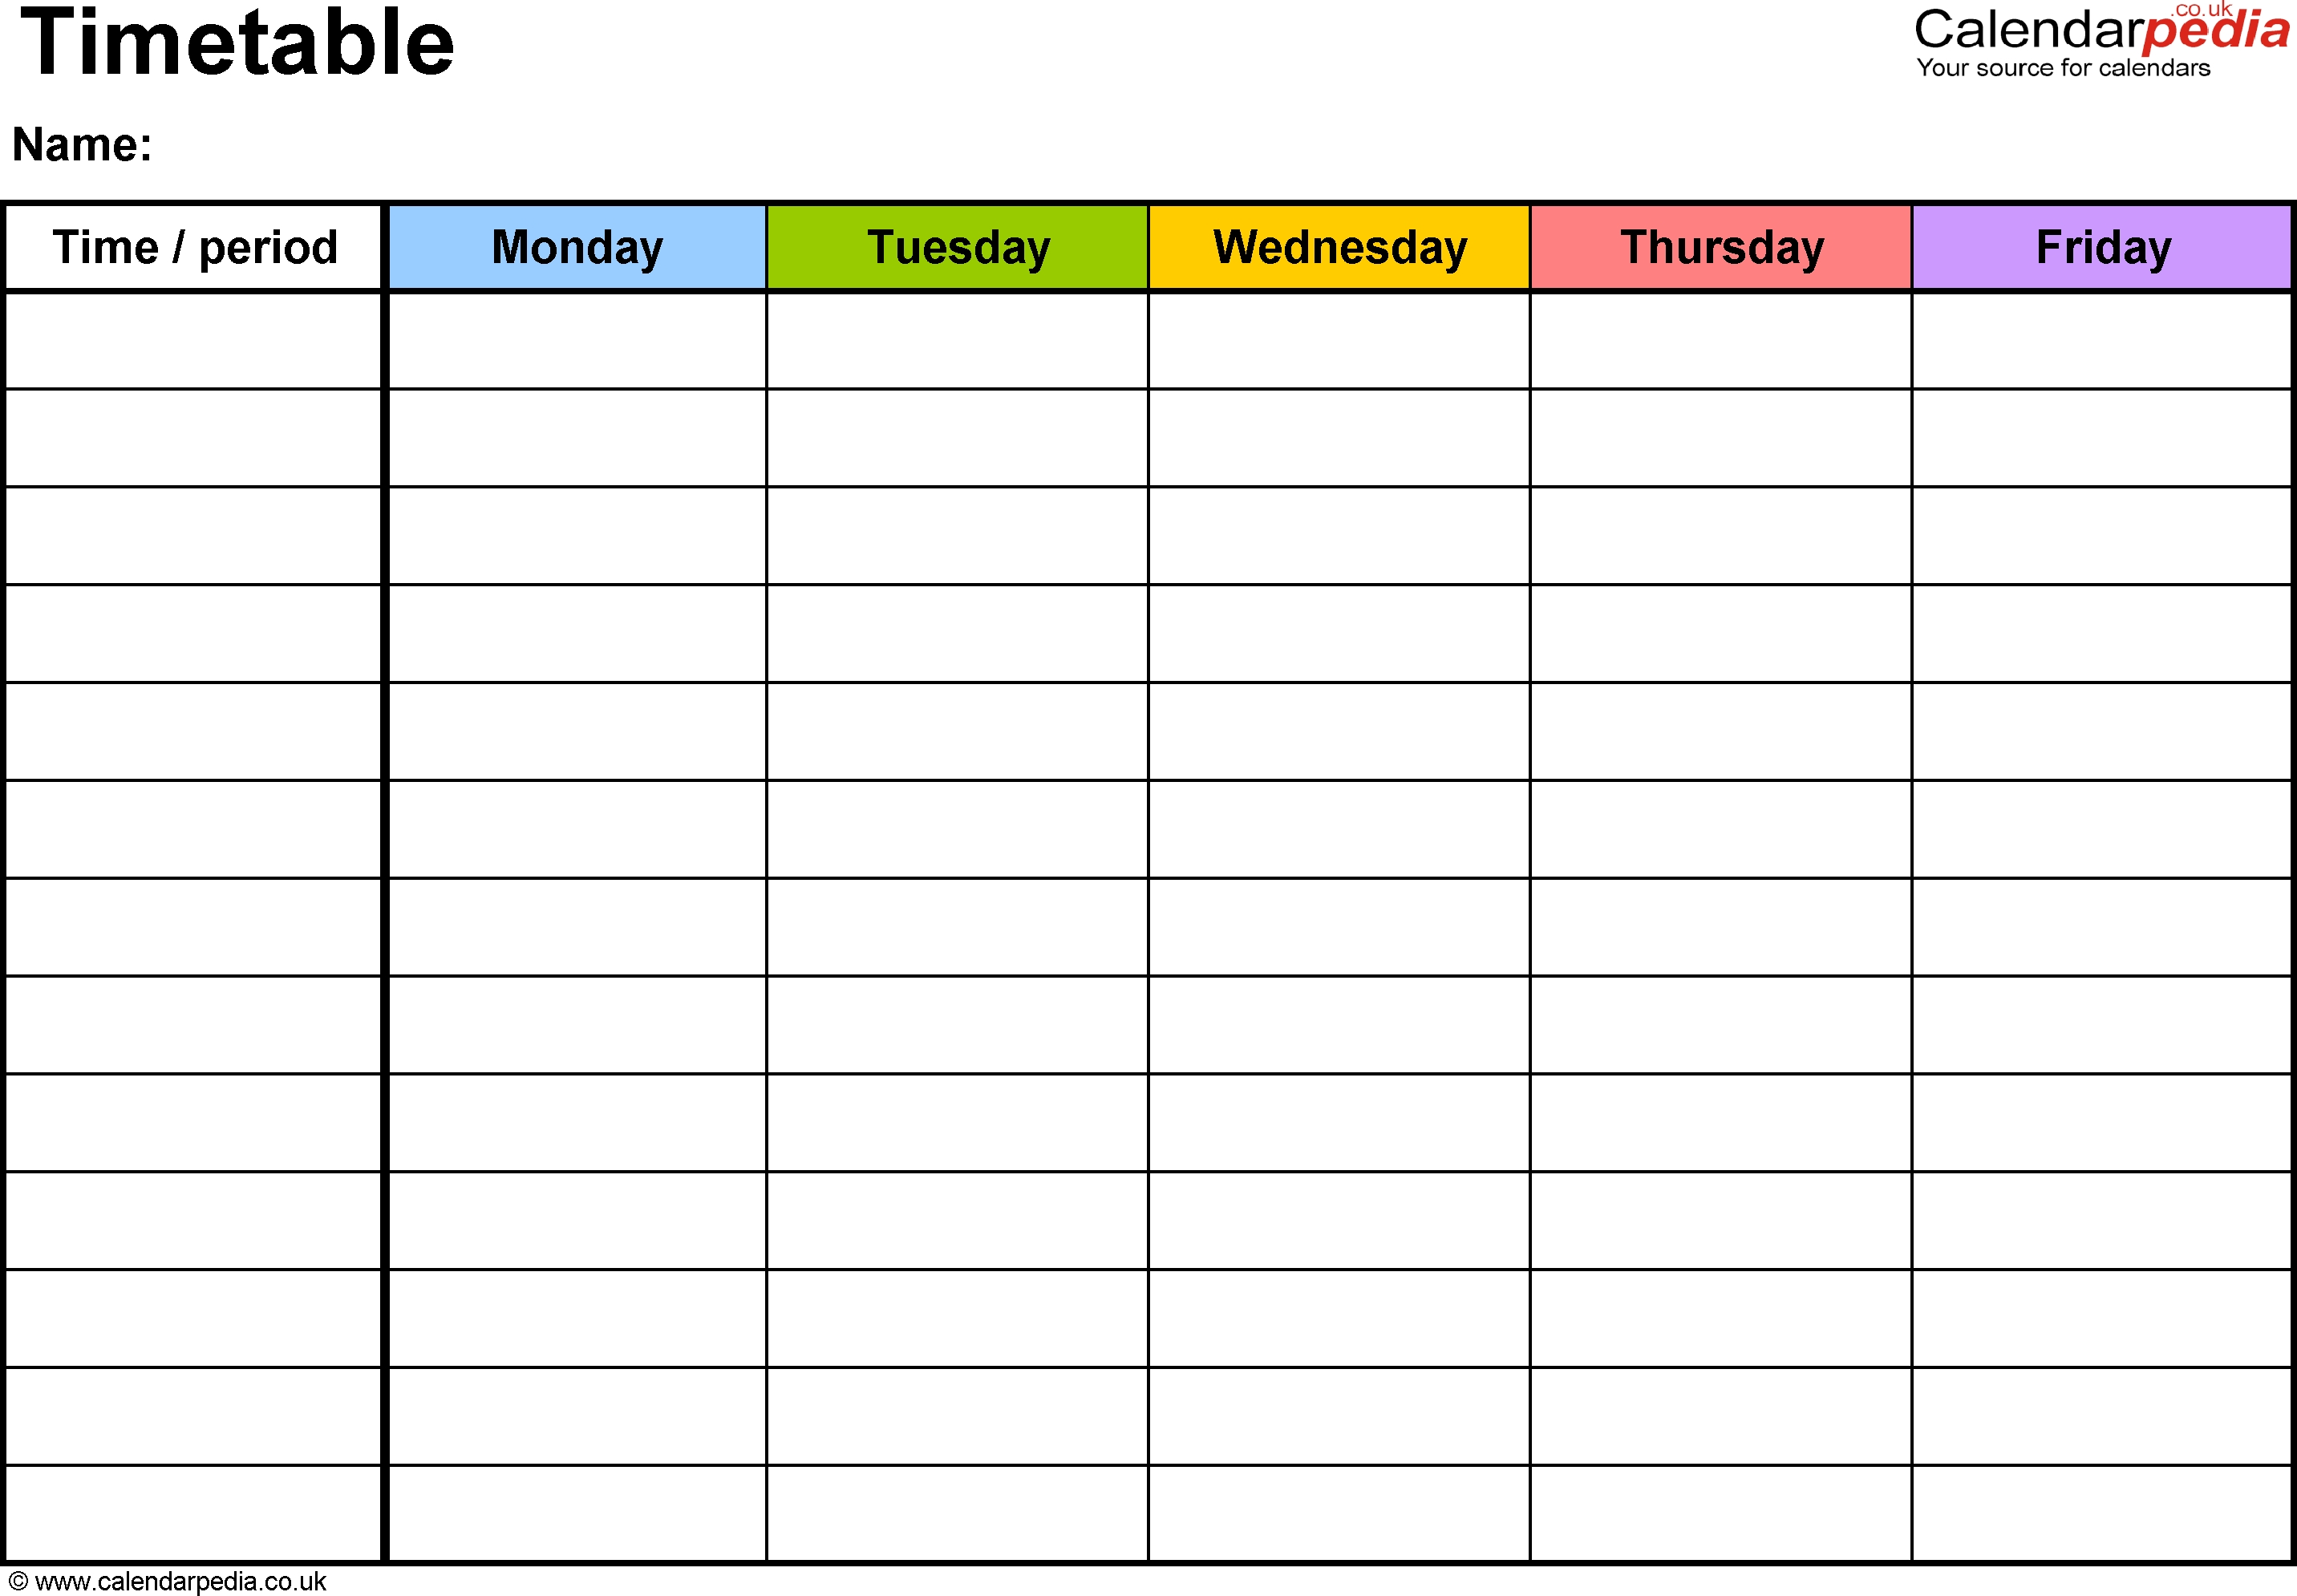 Pdf Timetable Template 2: Landscape Format, A4, 1 Page-Monday To Friday Timetable Template